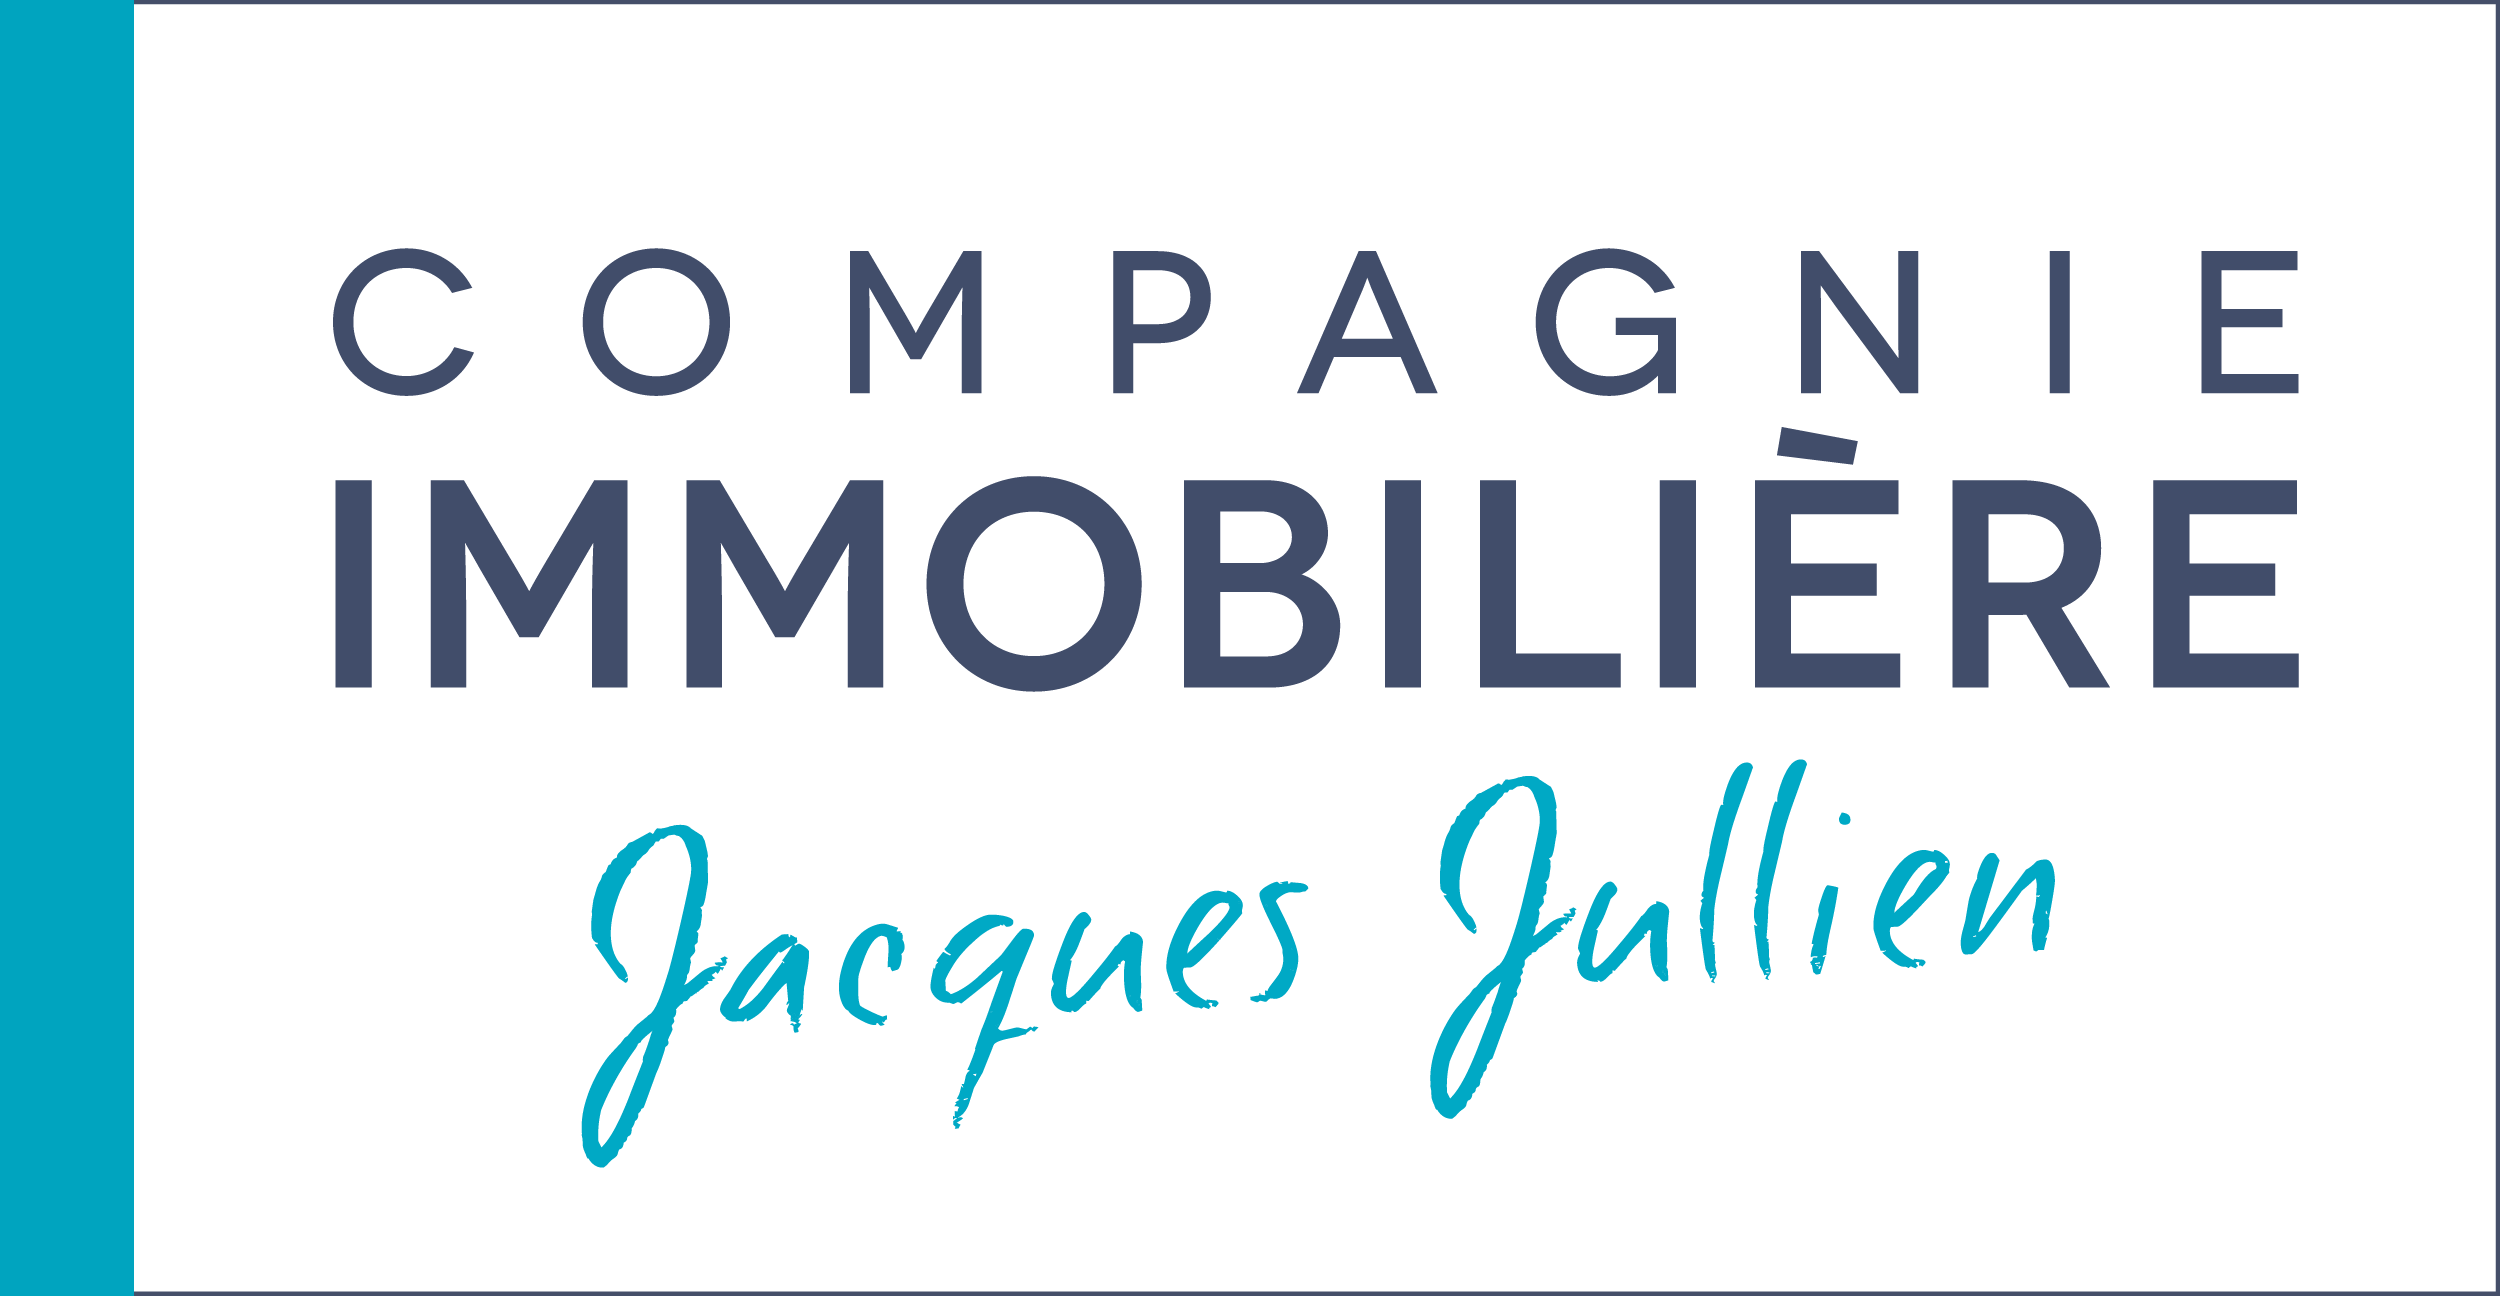 logo-compagnie-immobiliere-jacques-jullien